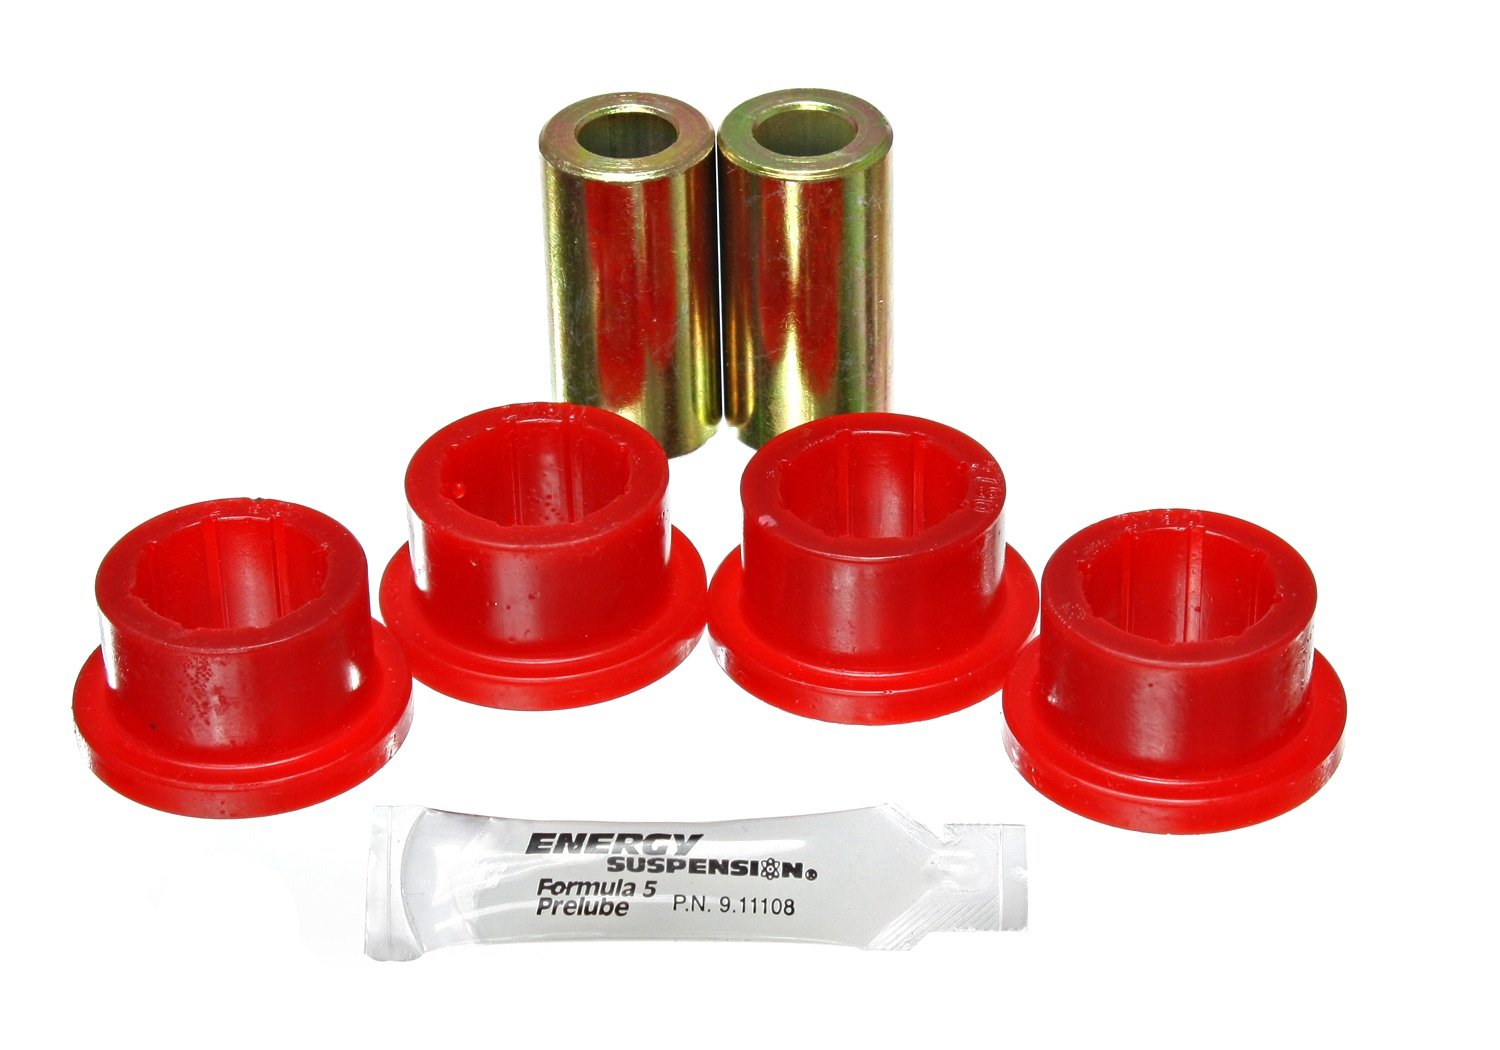 Energy Suspension 87105R Rear Track Rod Bushing 8.7105R